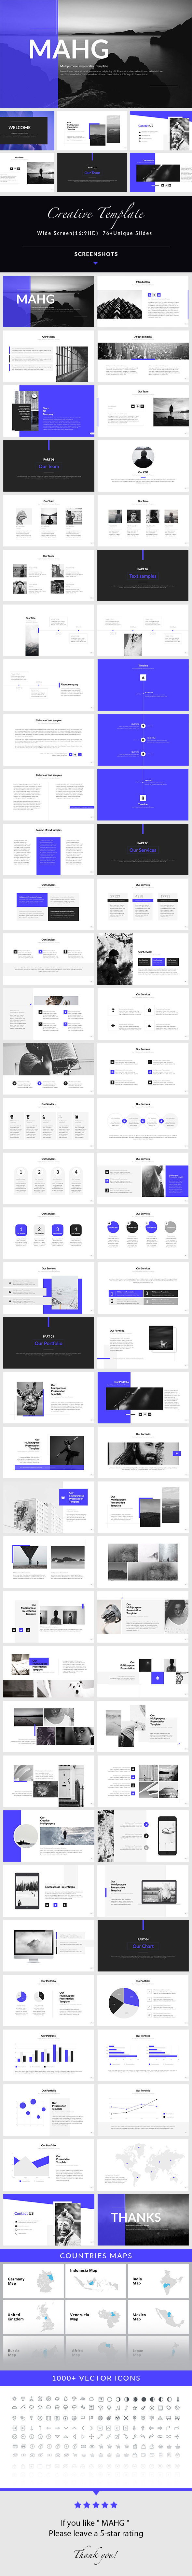 MAHG - PowerPoint Presentation Template - Creative PowerPoint Templates